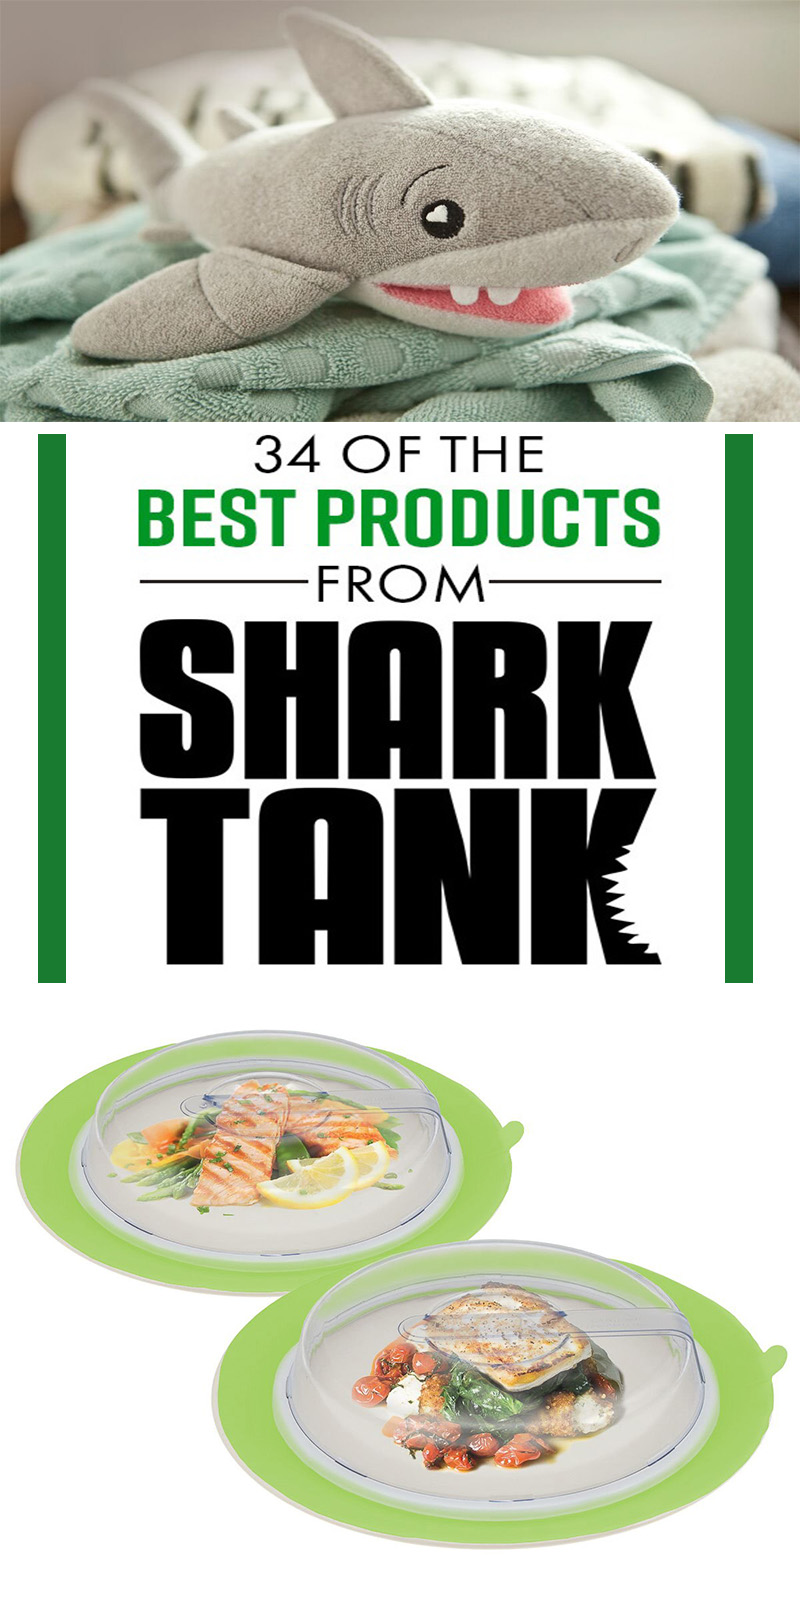 34 Of The Best Products From SHARK TANK Reviews - 34 Of The Best Products From SHARK TANK + Reviews